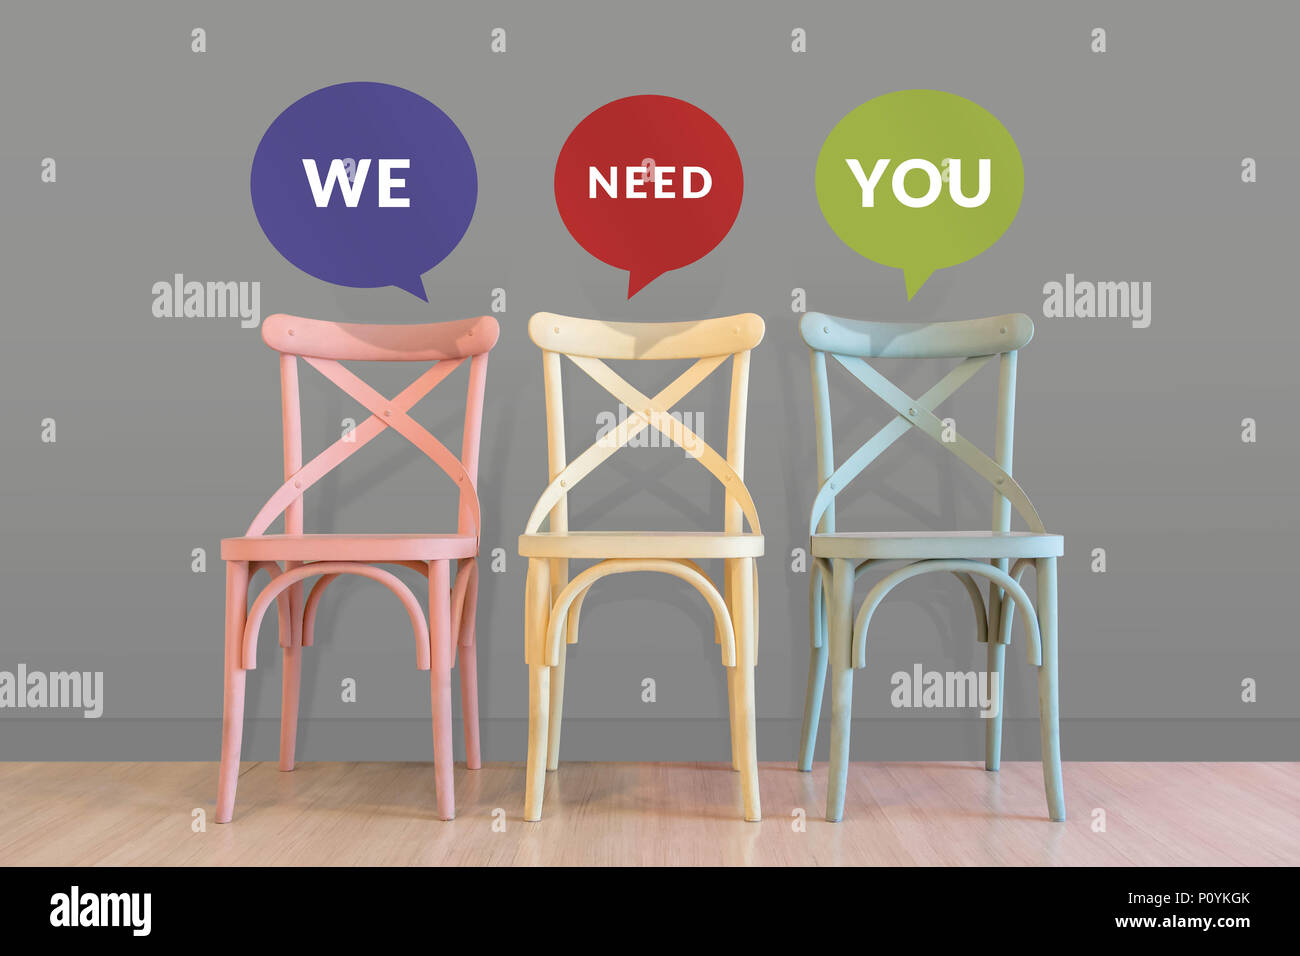 the vacant chair human jungle webbing repair need stock photos and images alamy